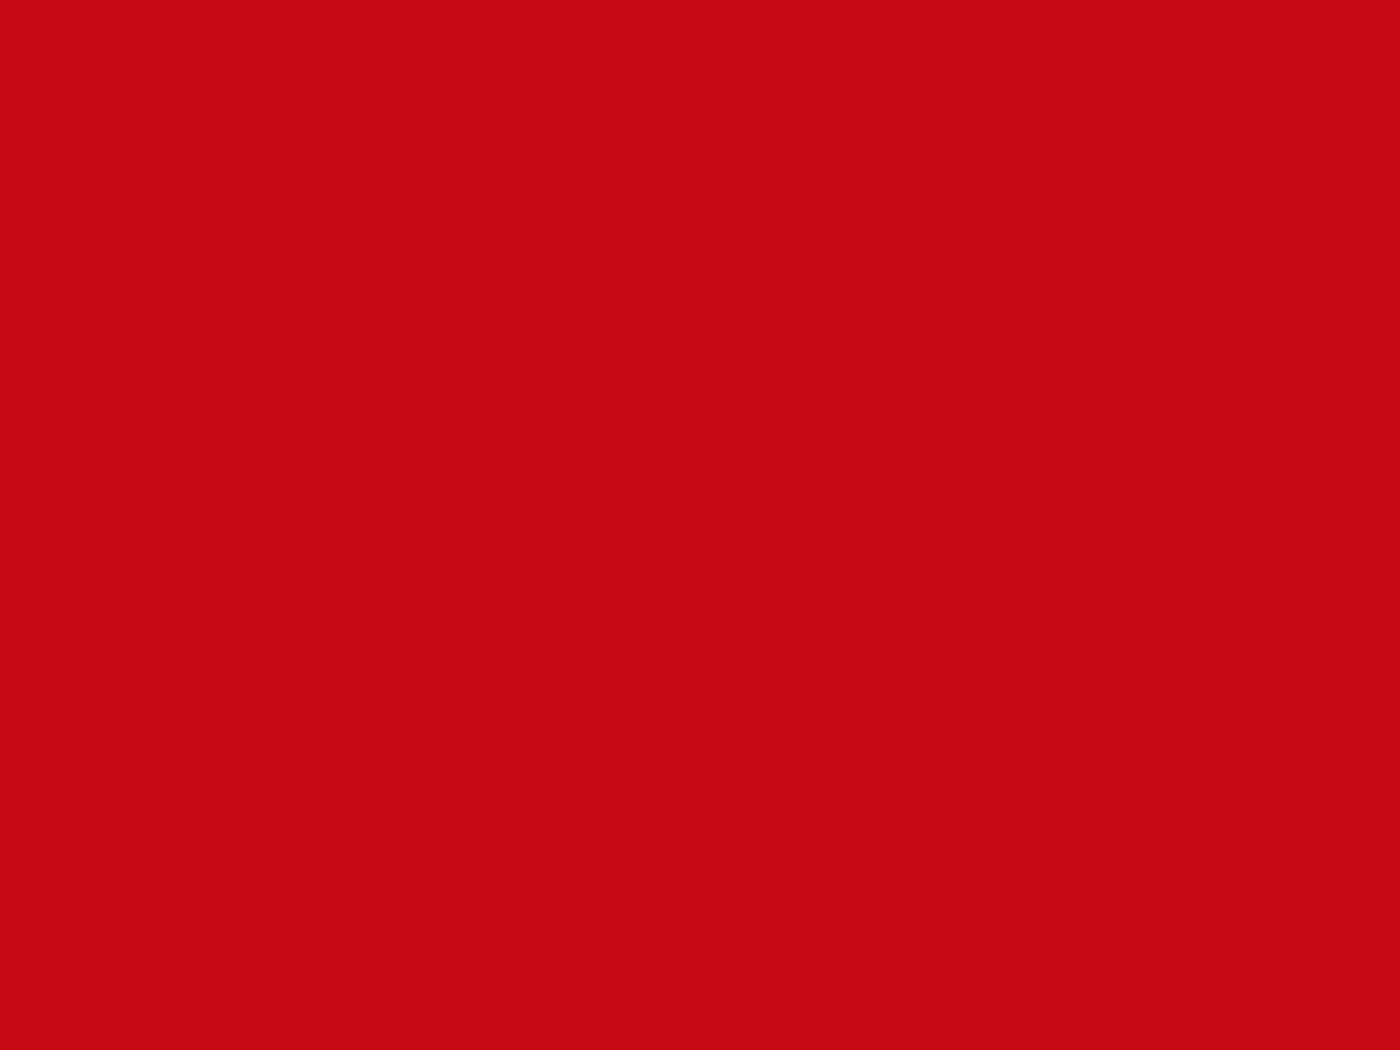 1400x1050 Venetian Red Solid Color Background